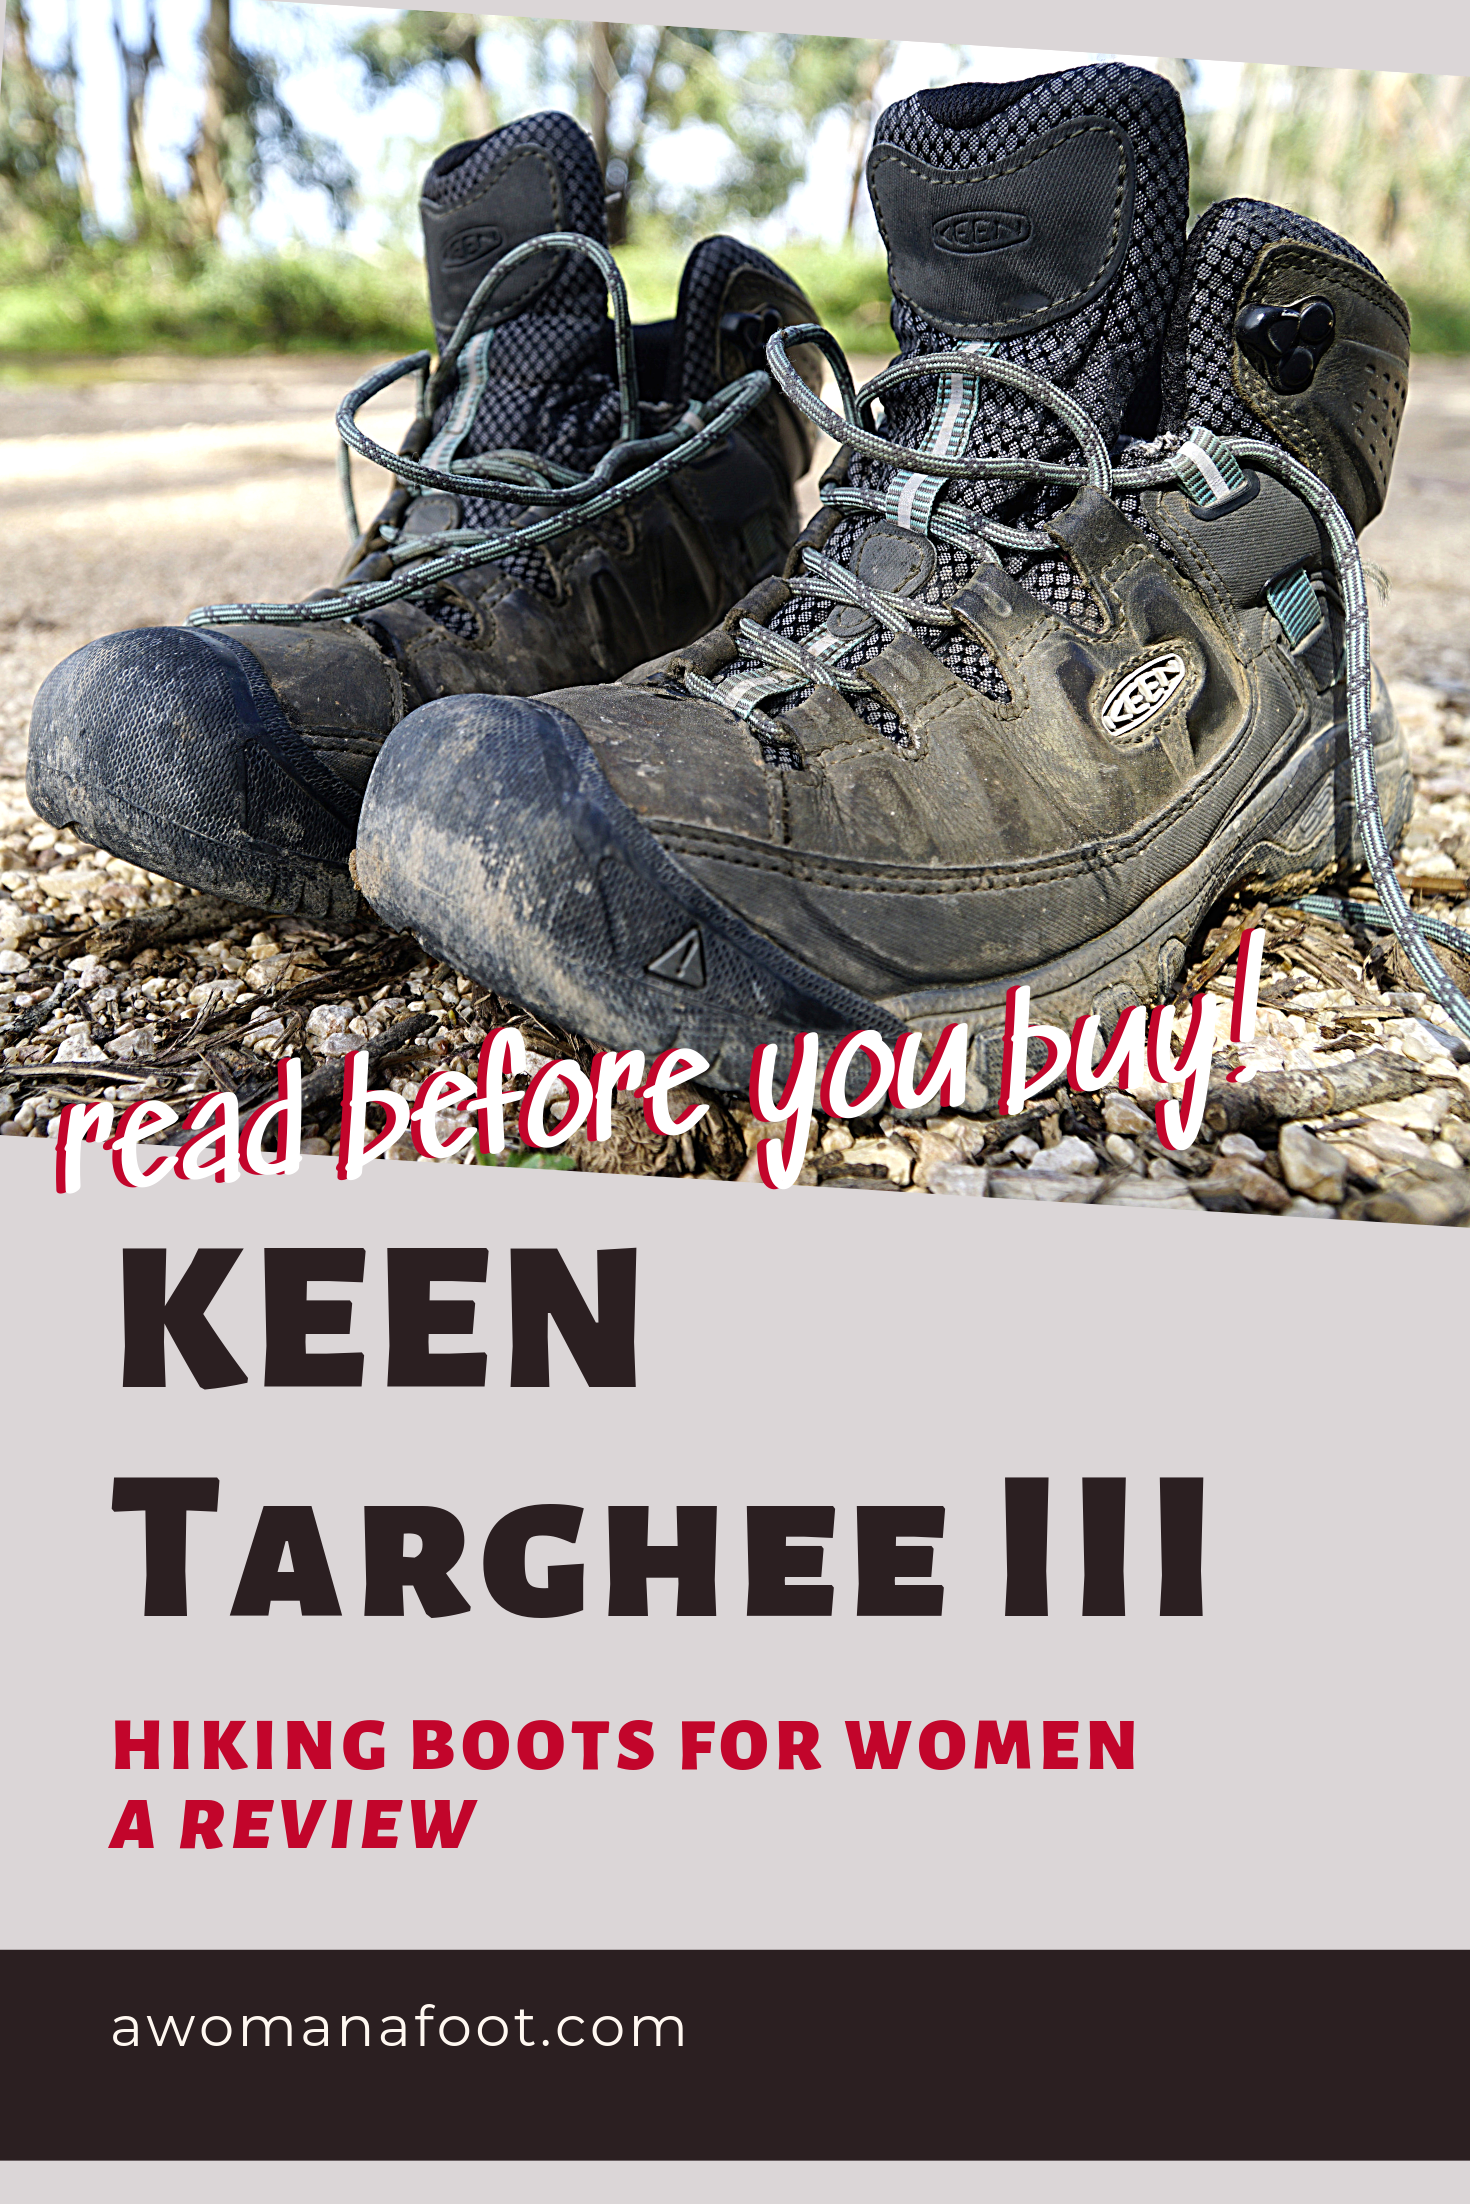 KEEN Targhee III hiking boots for women - a review by awomanafoot.com   Read before you buy!   Trekking boots for women   Hiking Gear   Backpacking Reviews   Gear Review   #Hiking #Boots #KEENTargheeIII #GearReview #BootsForWomen   What boots to buy   What to pack into the mountains   Hiking Attire   #HikingBoots